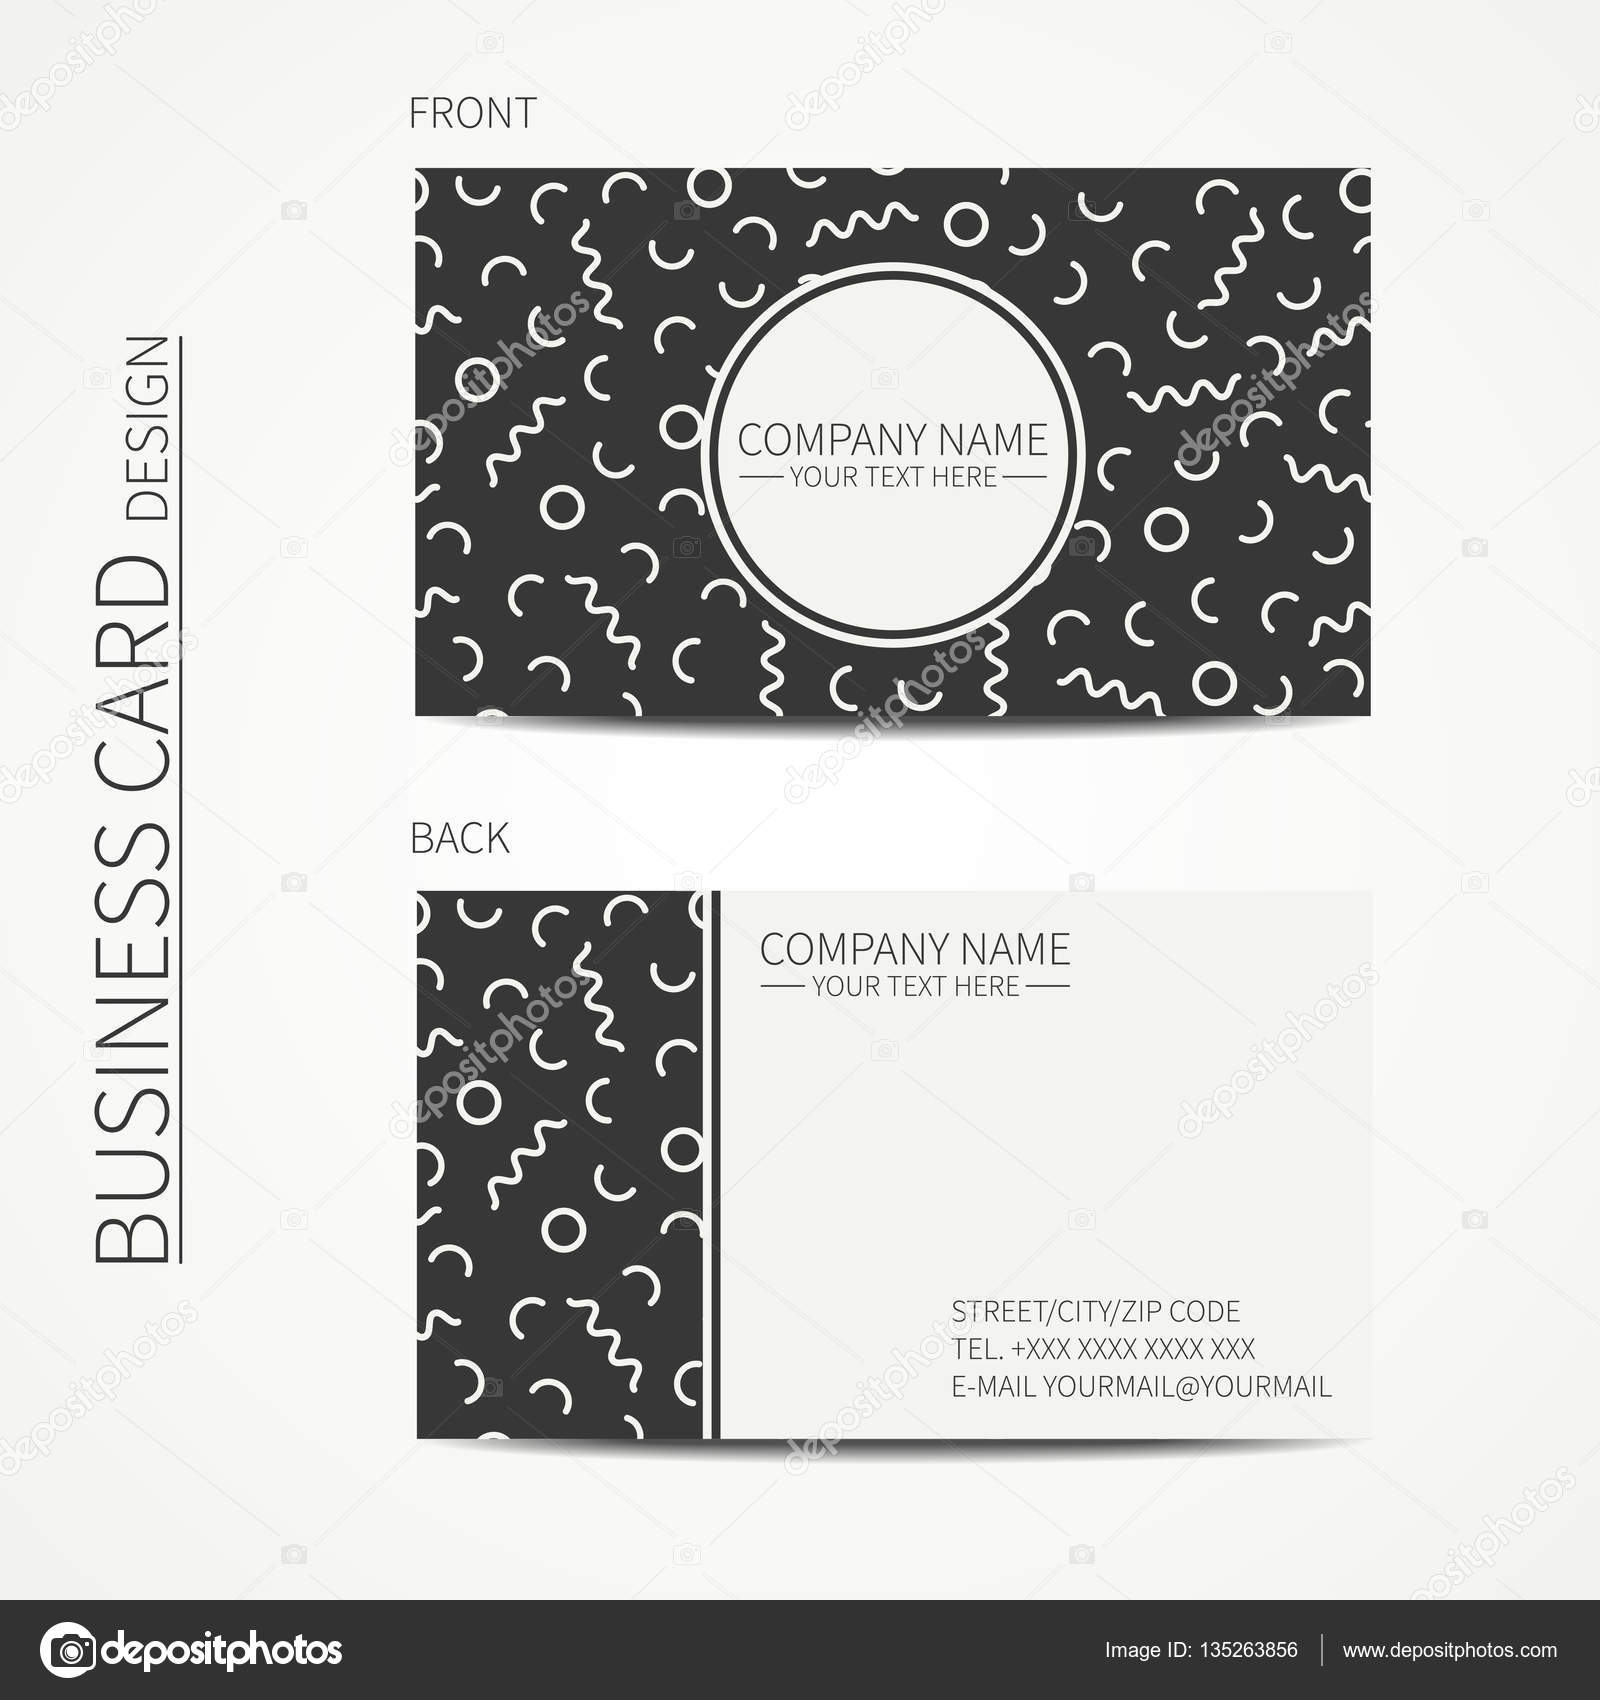 Vector simple business card design Memphis style Template Black